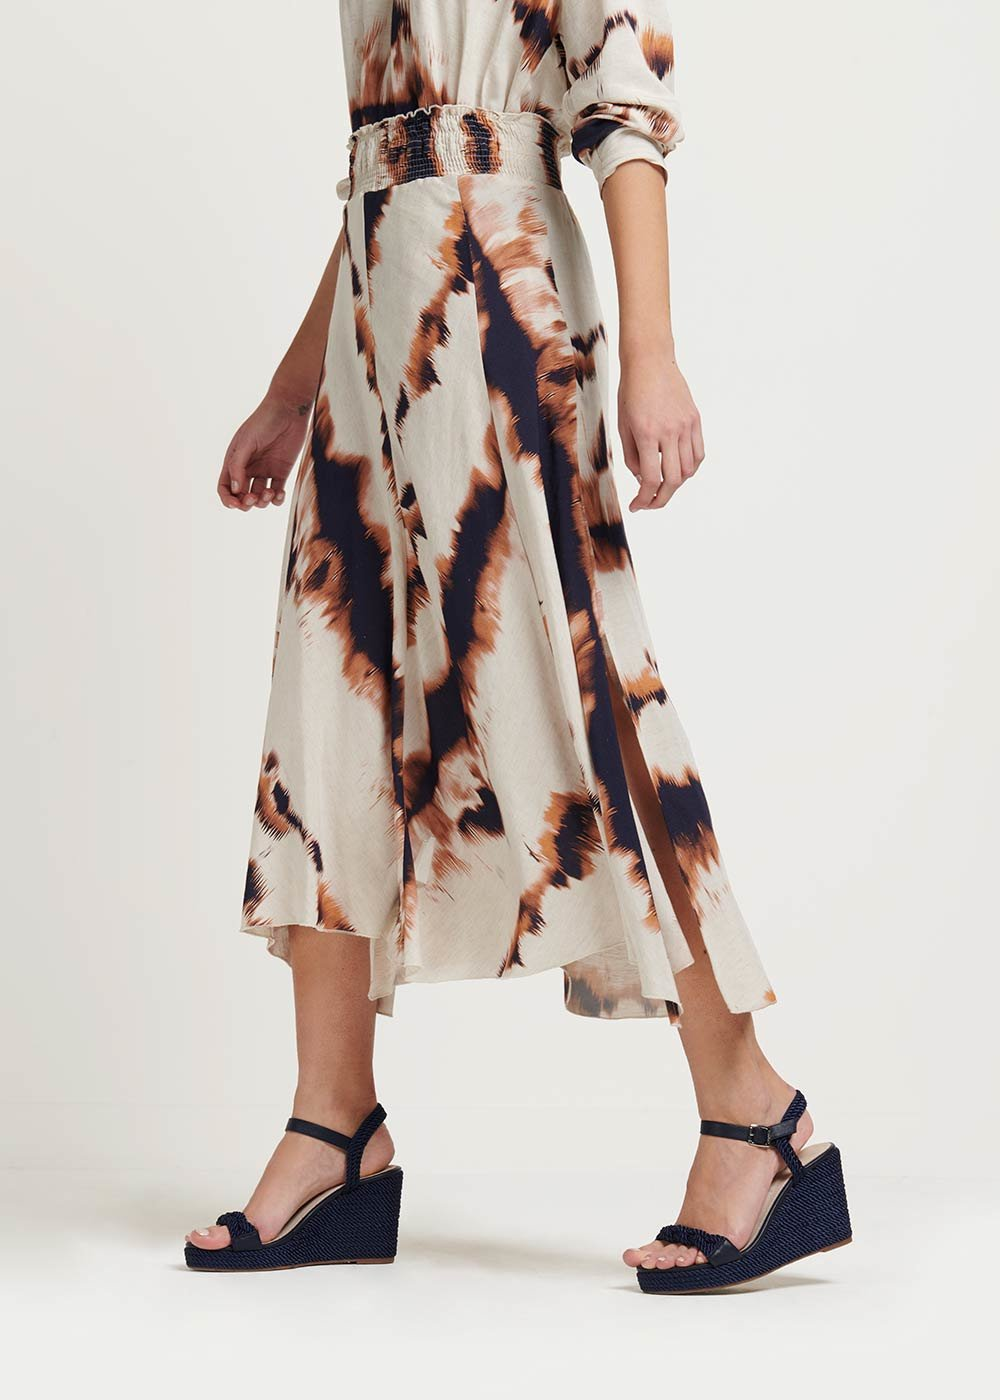 Genny matching long skirt - L.beige\ Coccio Fantasia - Woman